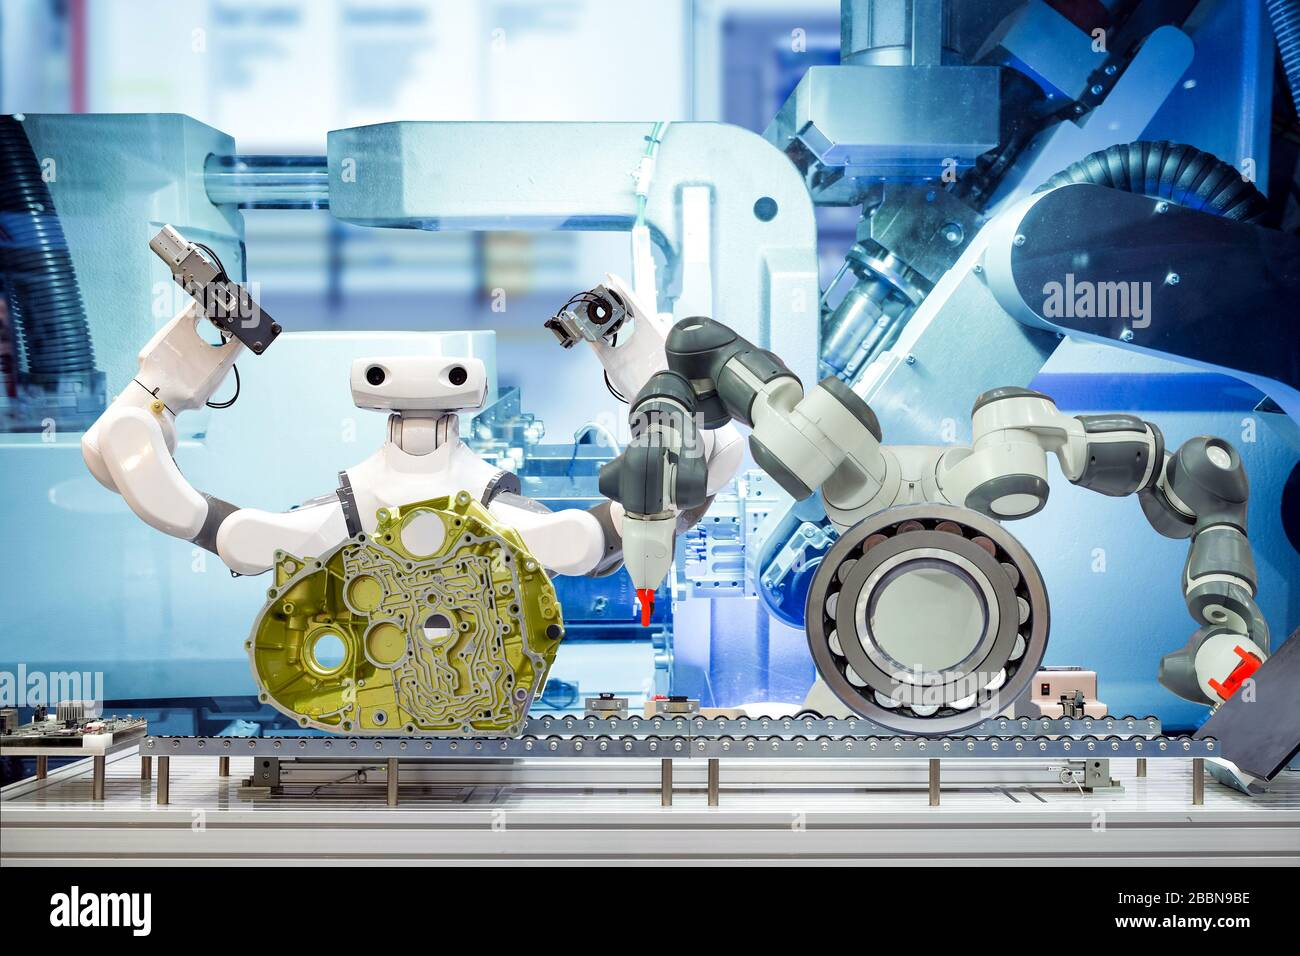 Two industrial robotics working automation with auto parts and spherical roller bearing via a conveyor belt, on machine blue tone color background Stock Photo